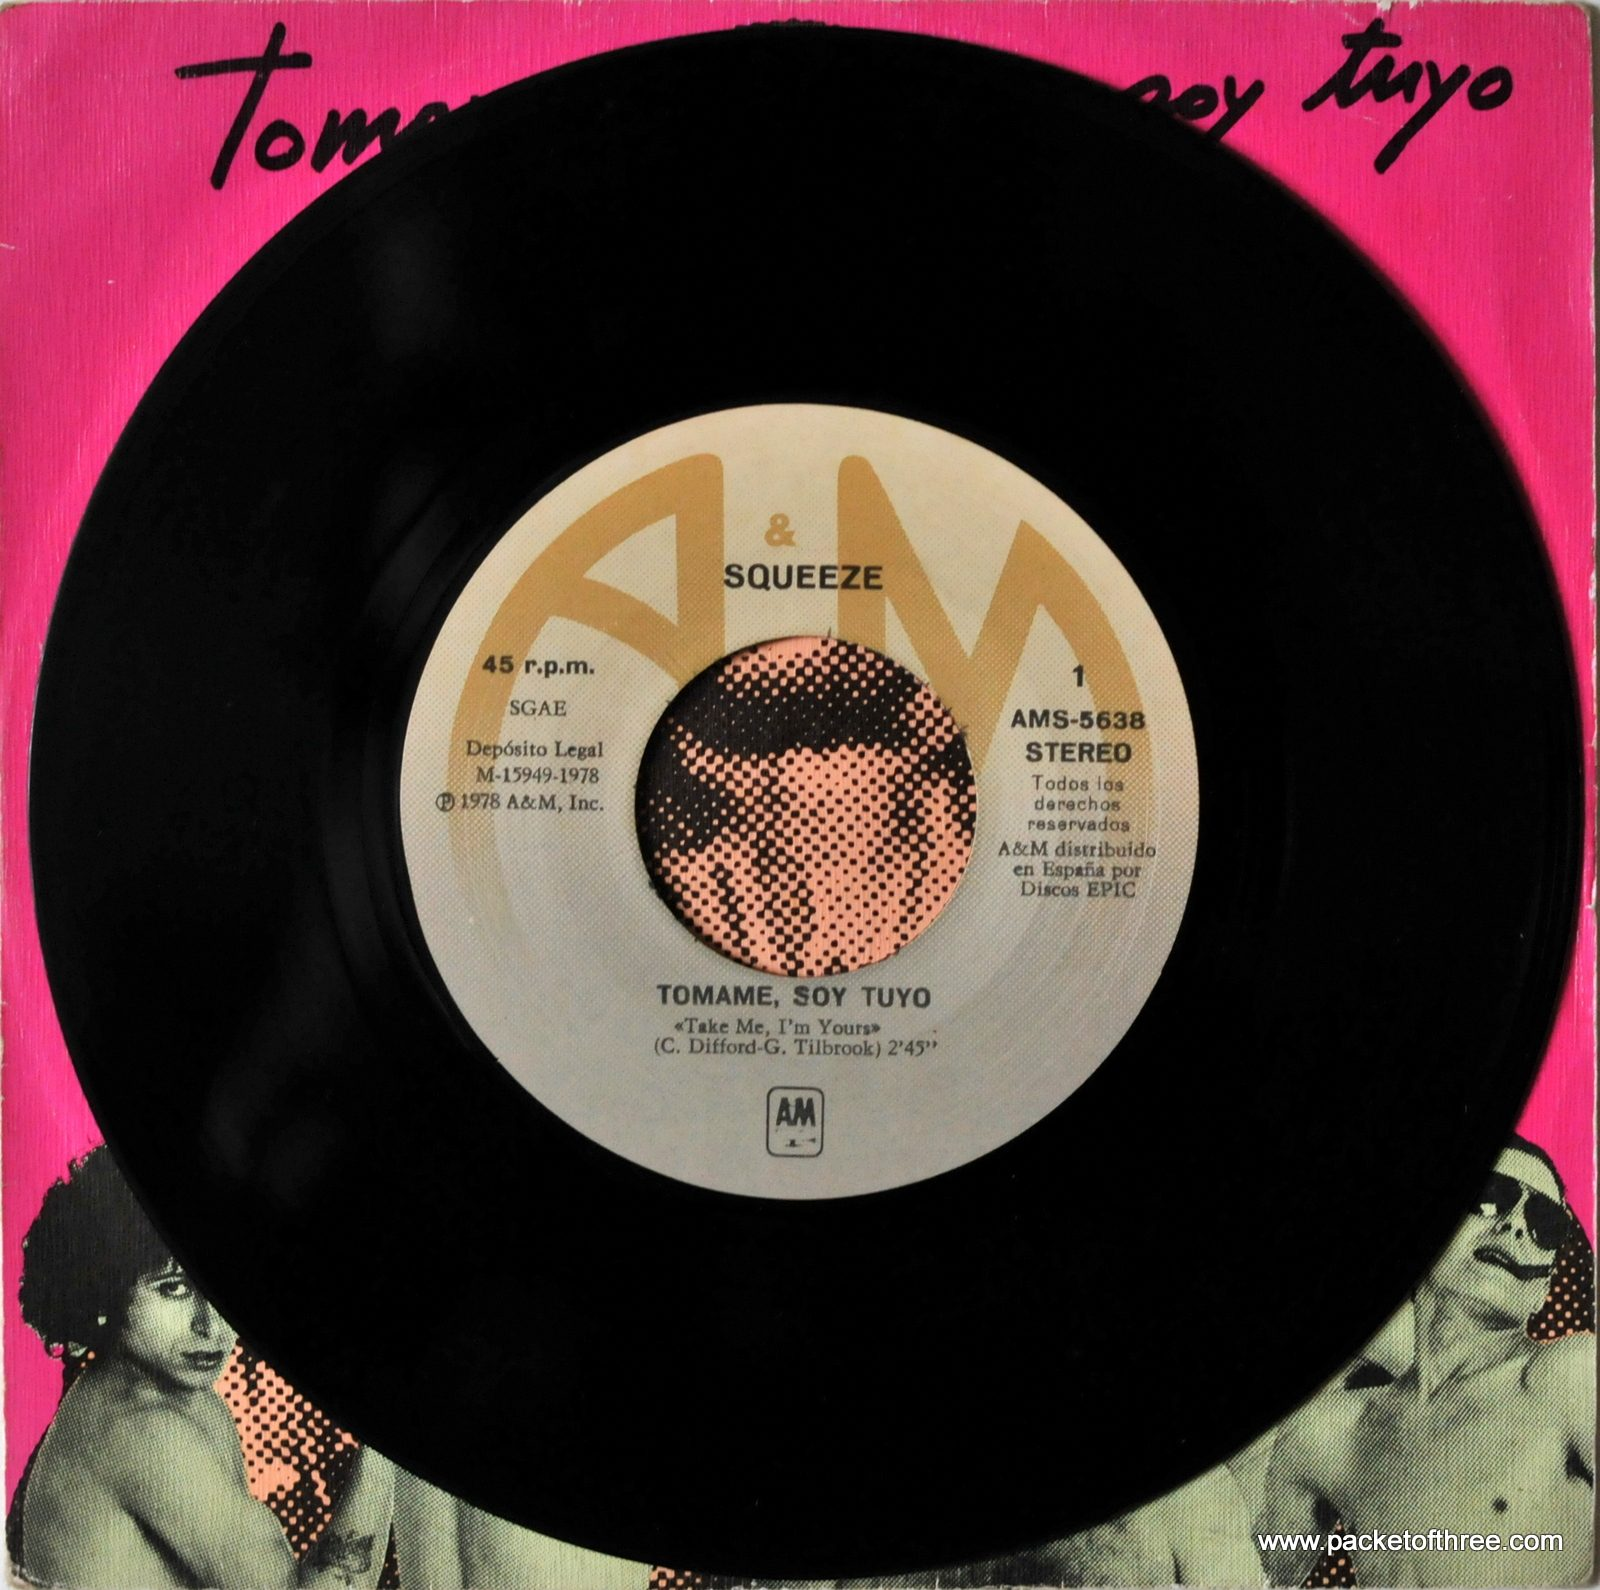 Take Me I'm Yours – Spain – 7″ – picture sleeve